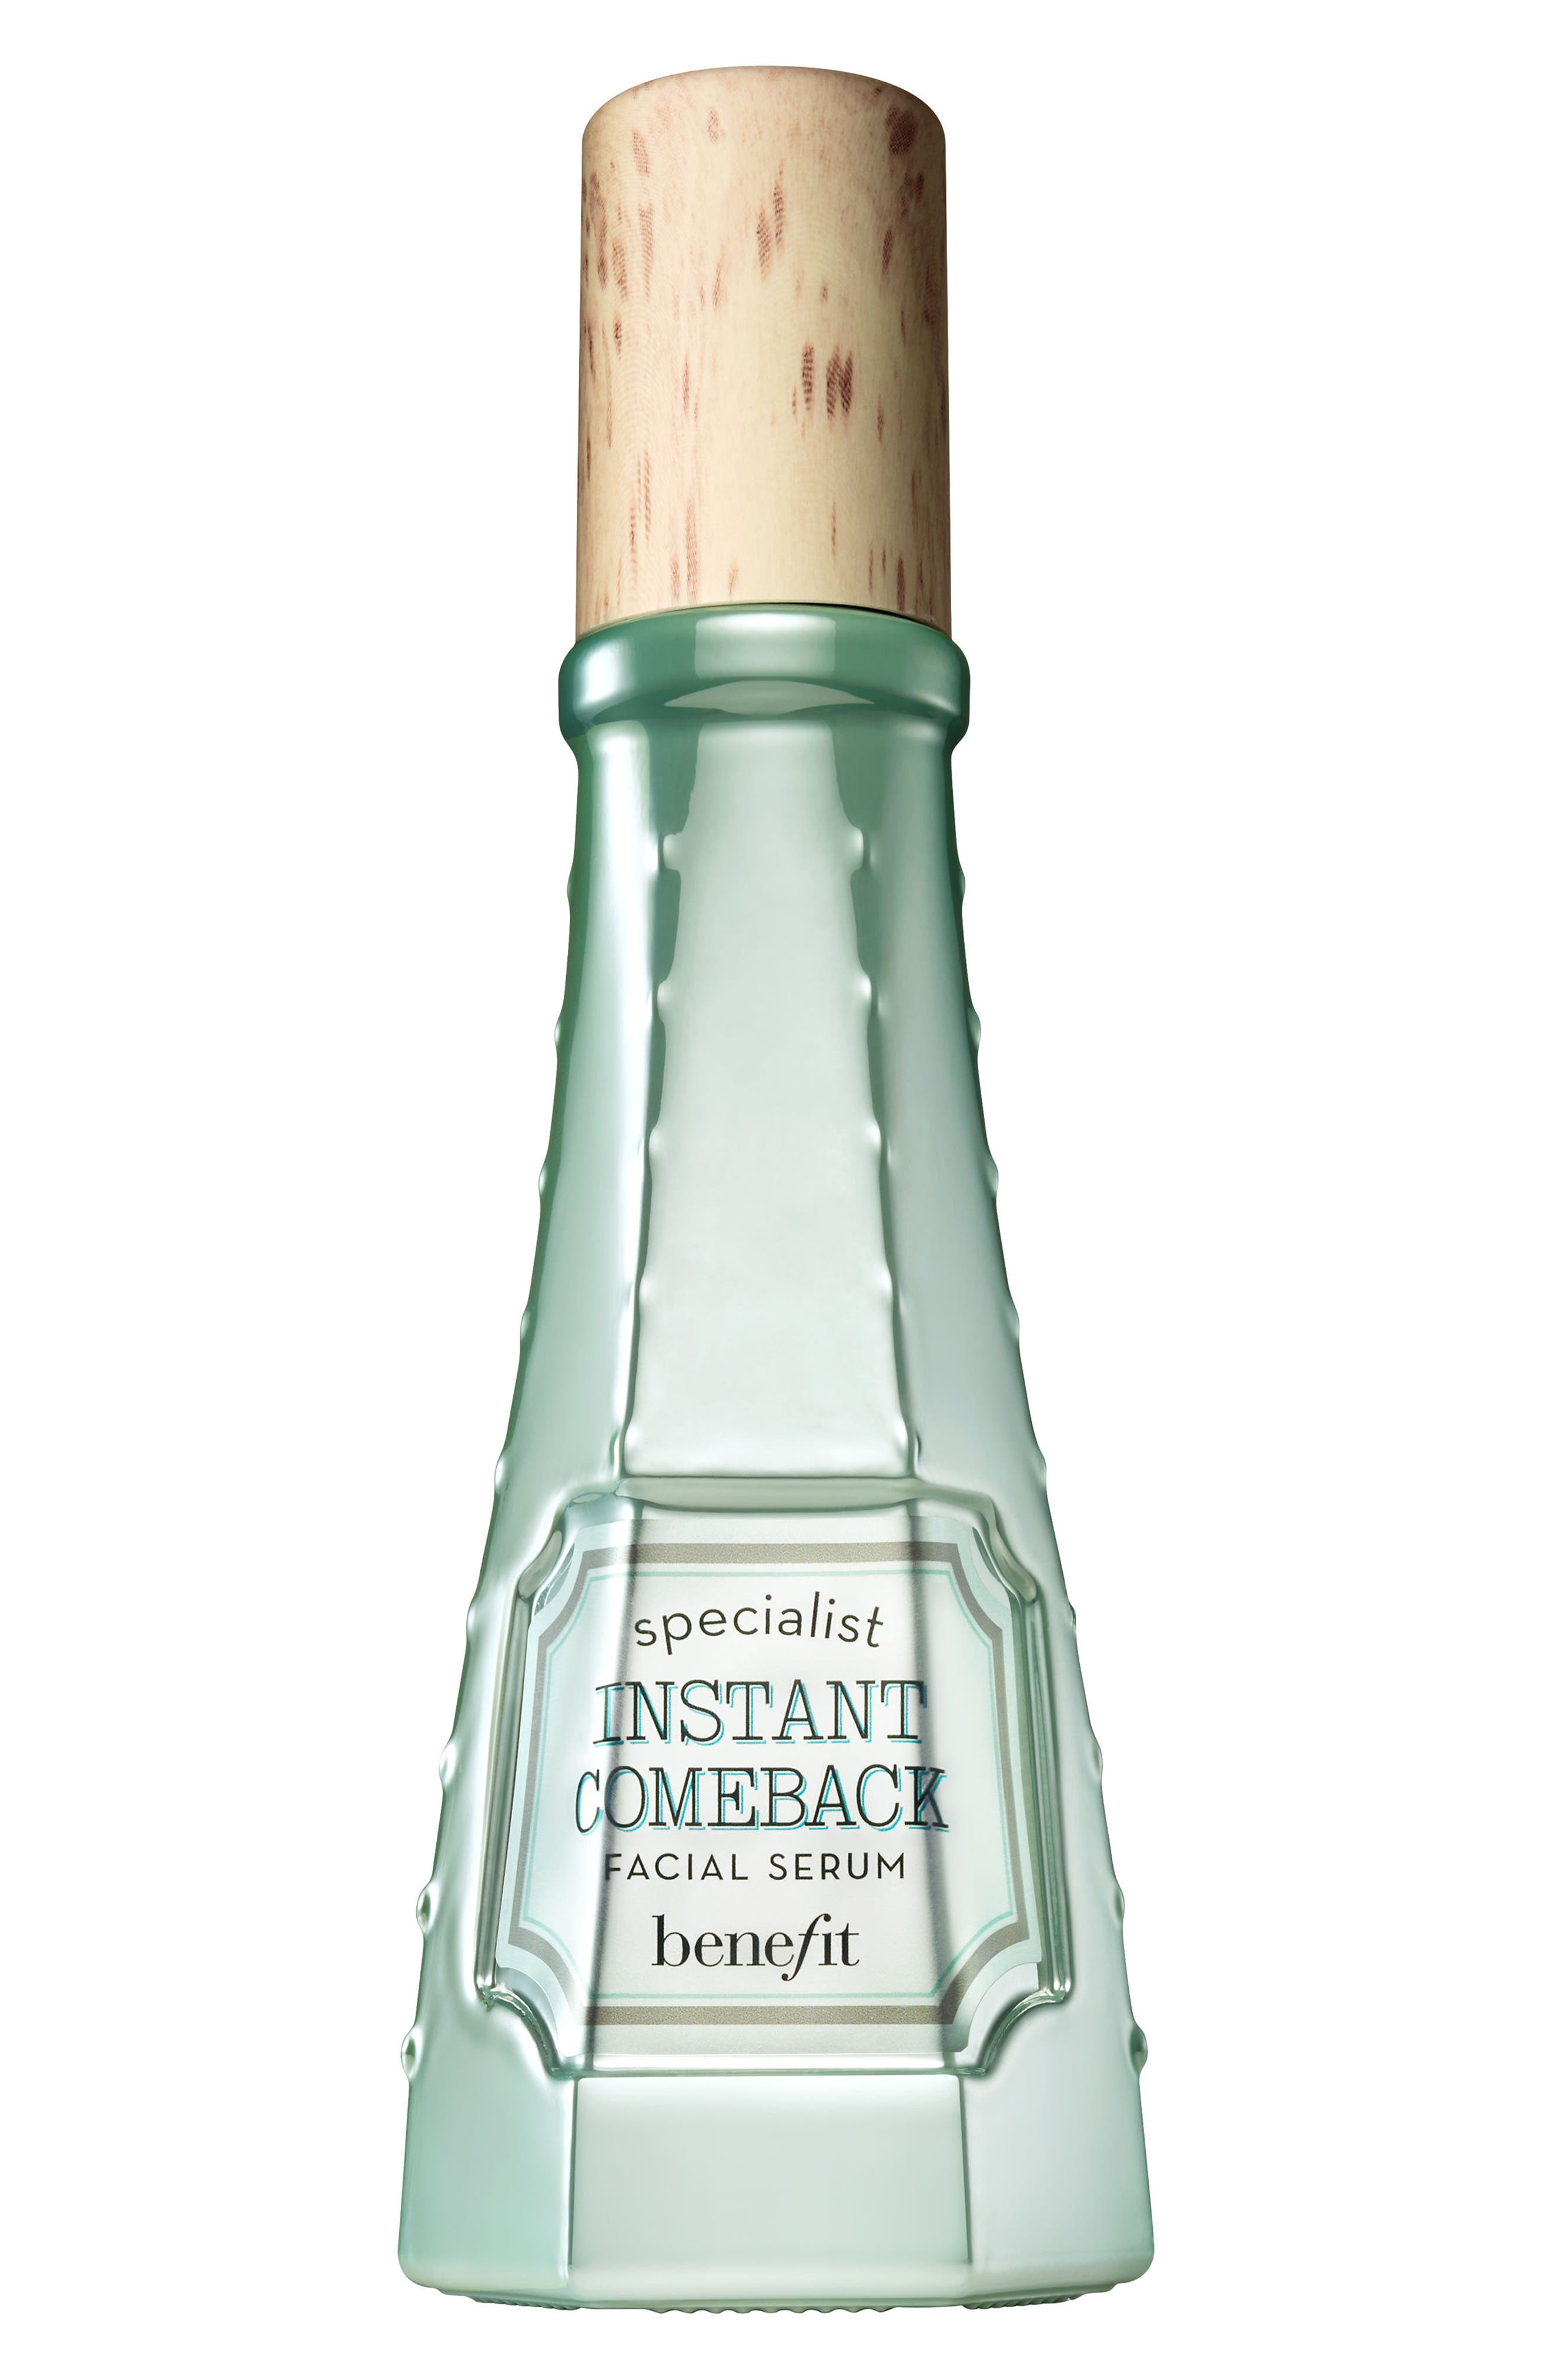 Benefit Instant Comeback Age-Defying Facial Serum,                         Main,                         color, 000